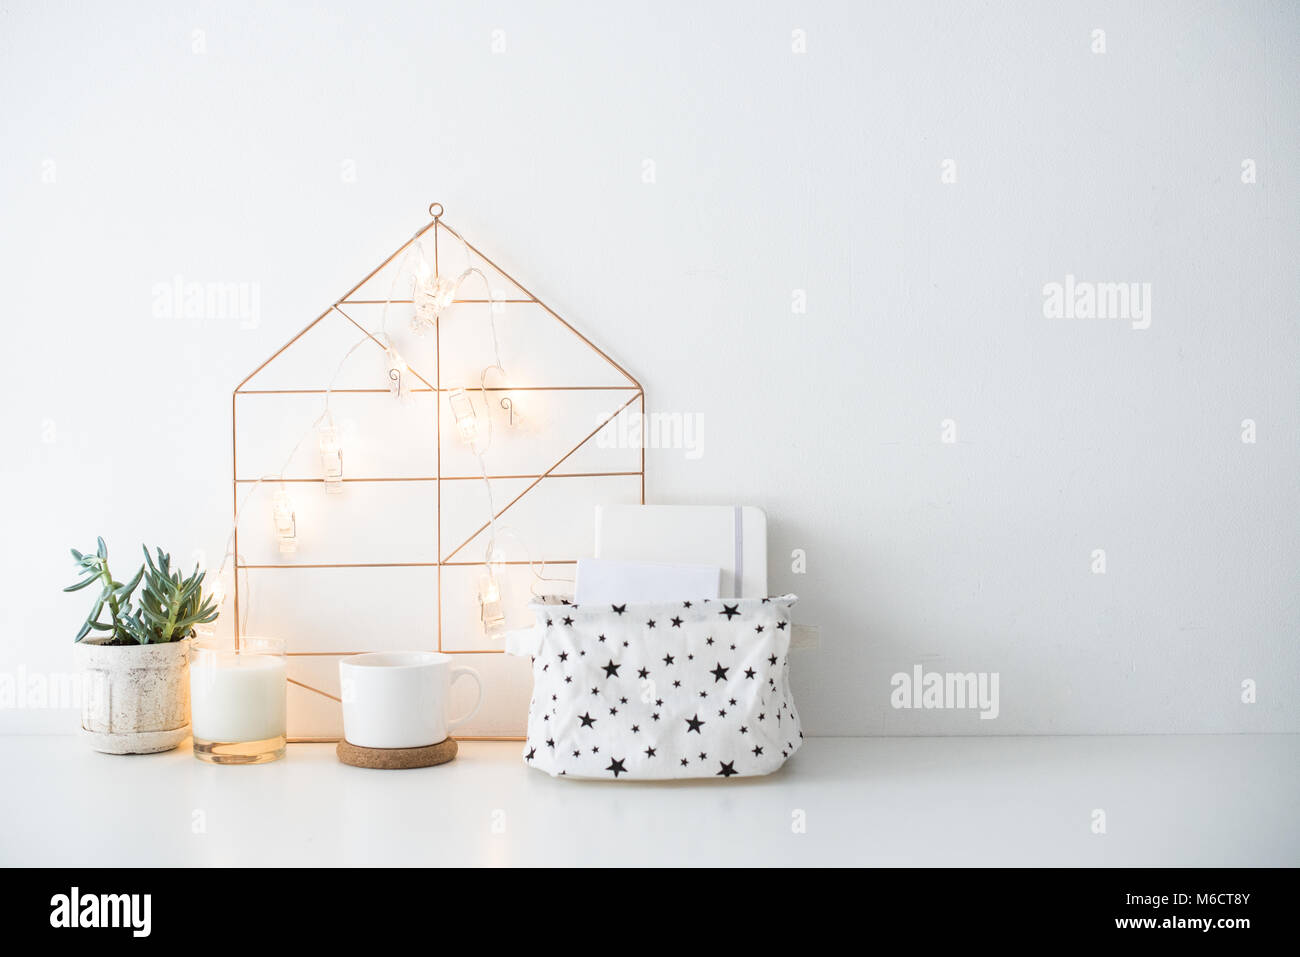 Minimalist Scandinavian Home Decor Storage Box And String Lights In White Room Interior